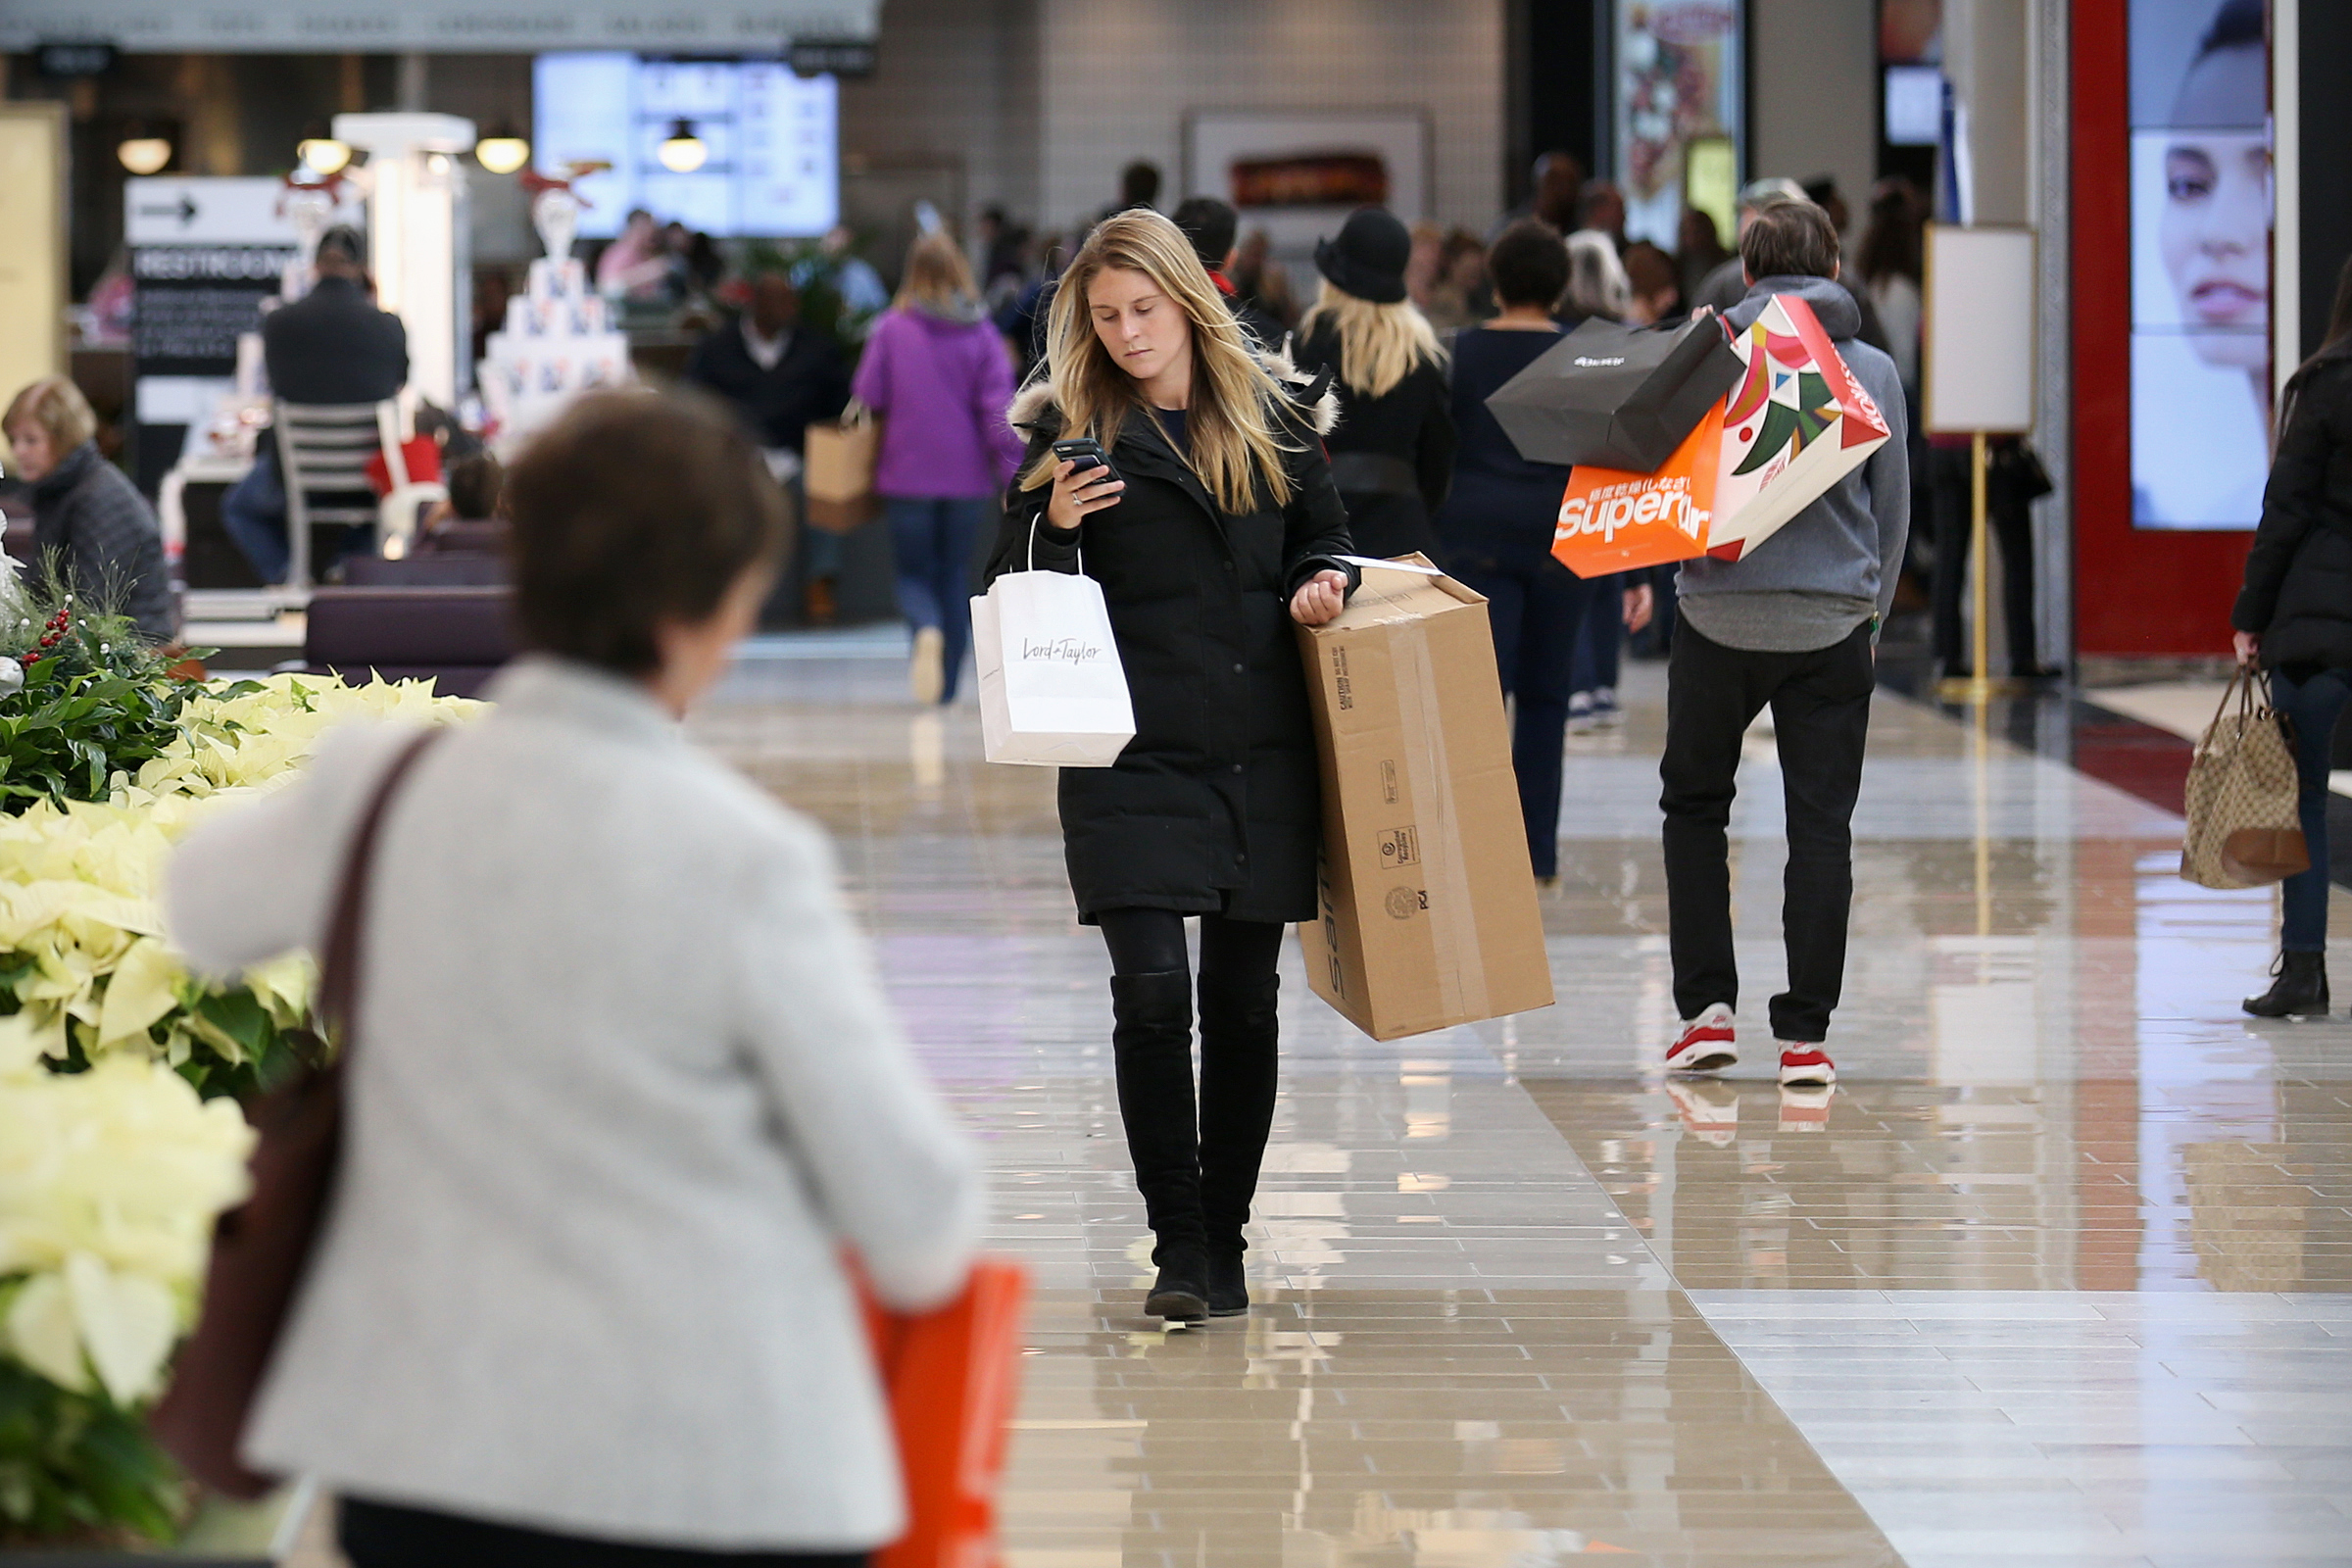 Christmas shoppers made their way through King of Prussia Mall on Thursday, Dec 21, 2017 Many loaded up on winter apparel, like coats, gloves and scarves during the mostly cold and dry holiday shopping season..